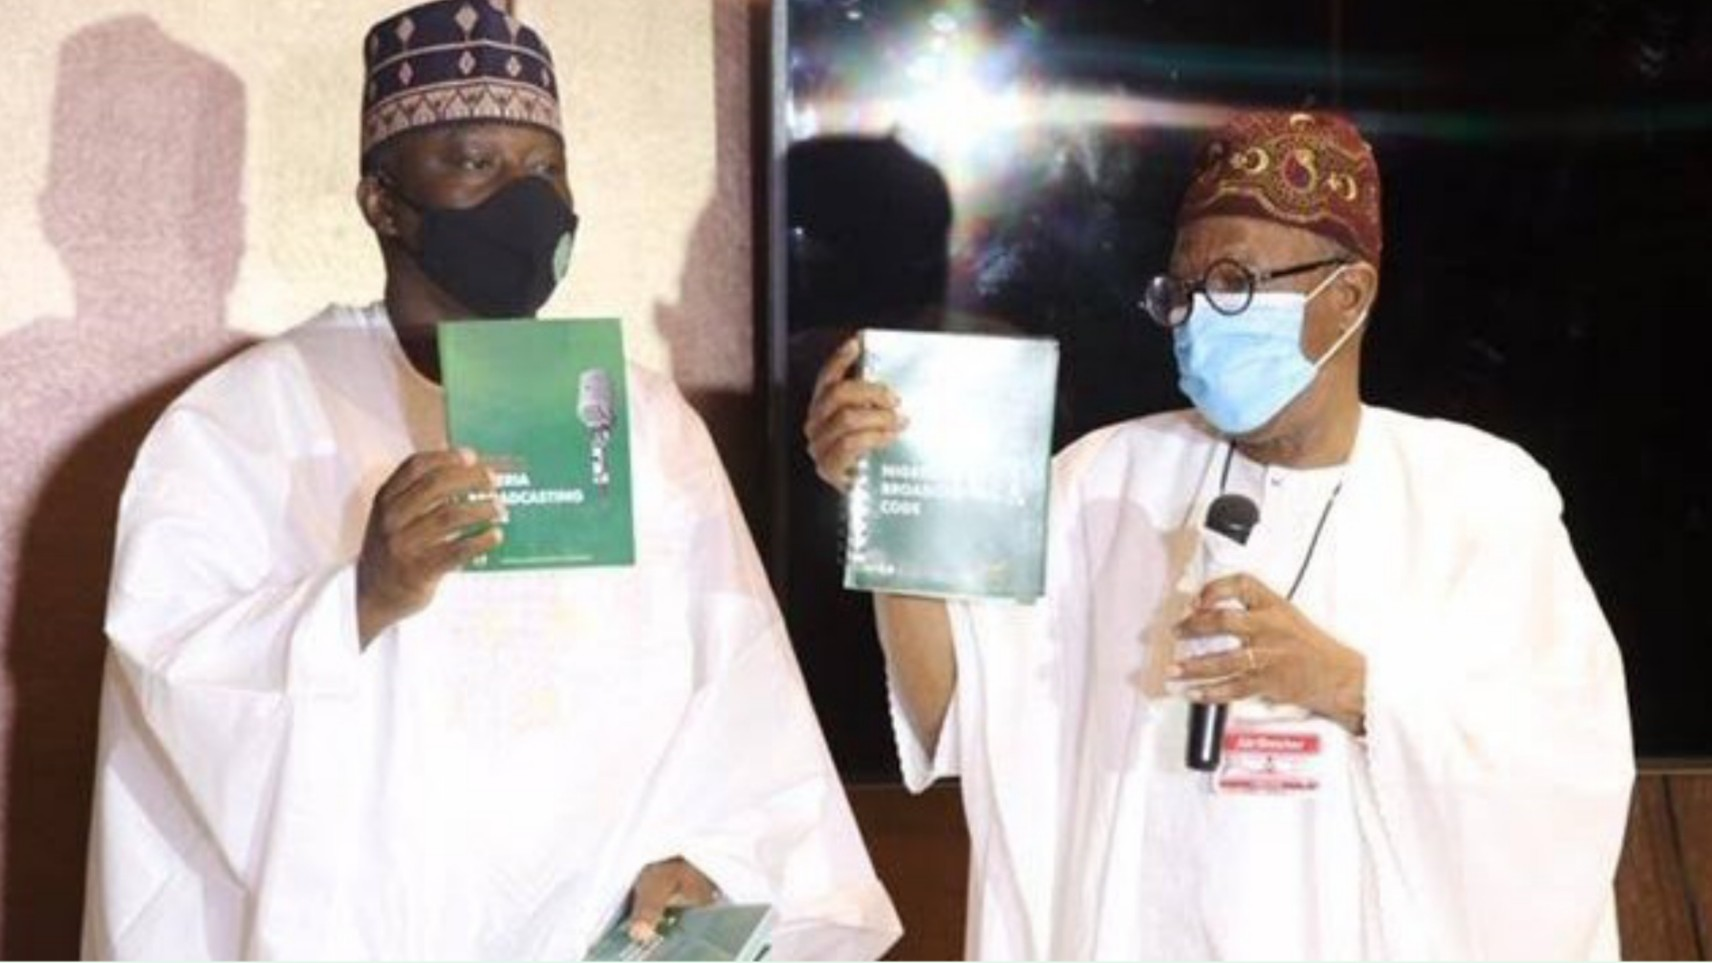 FG raises penalty for hate speech from N500,000 to N5 million